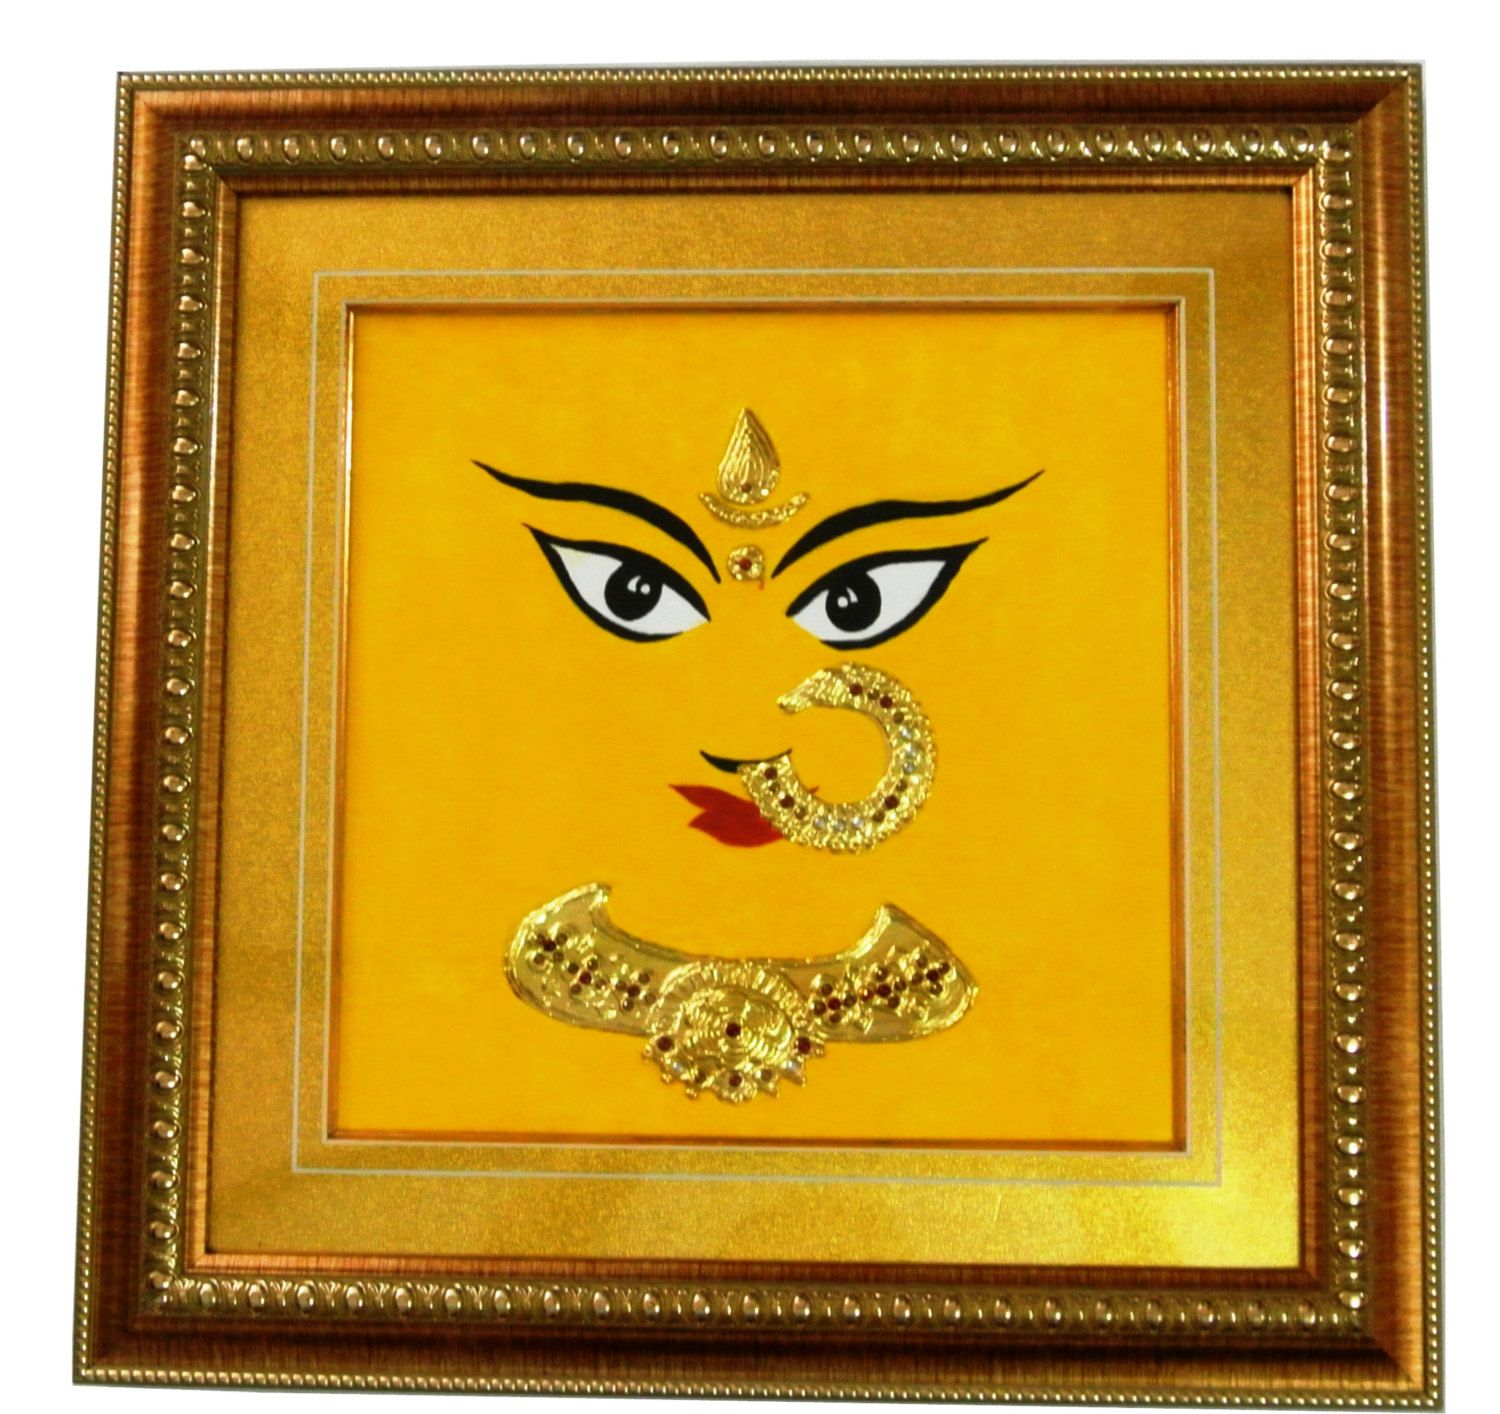 Tanjore Gold Foil Art Durga Acrylic Framed Ready to Hang South ...